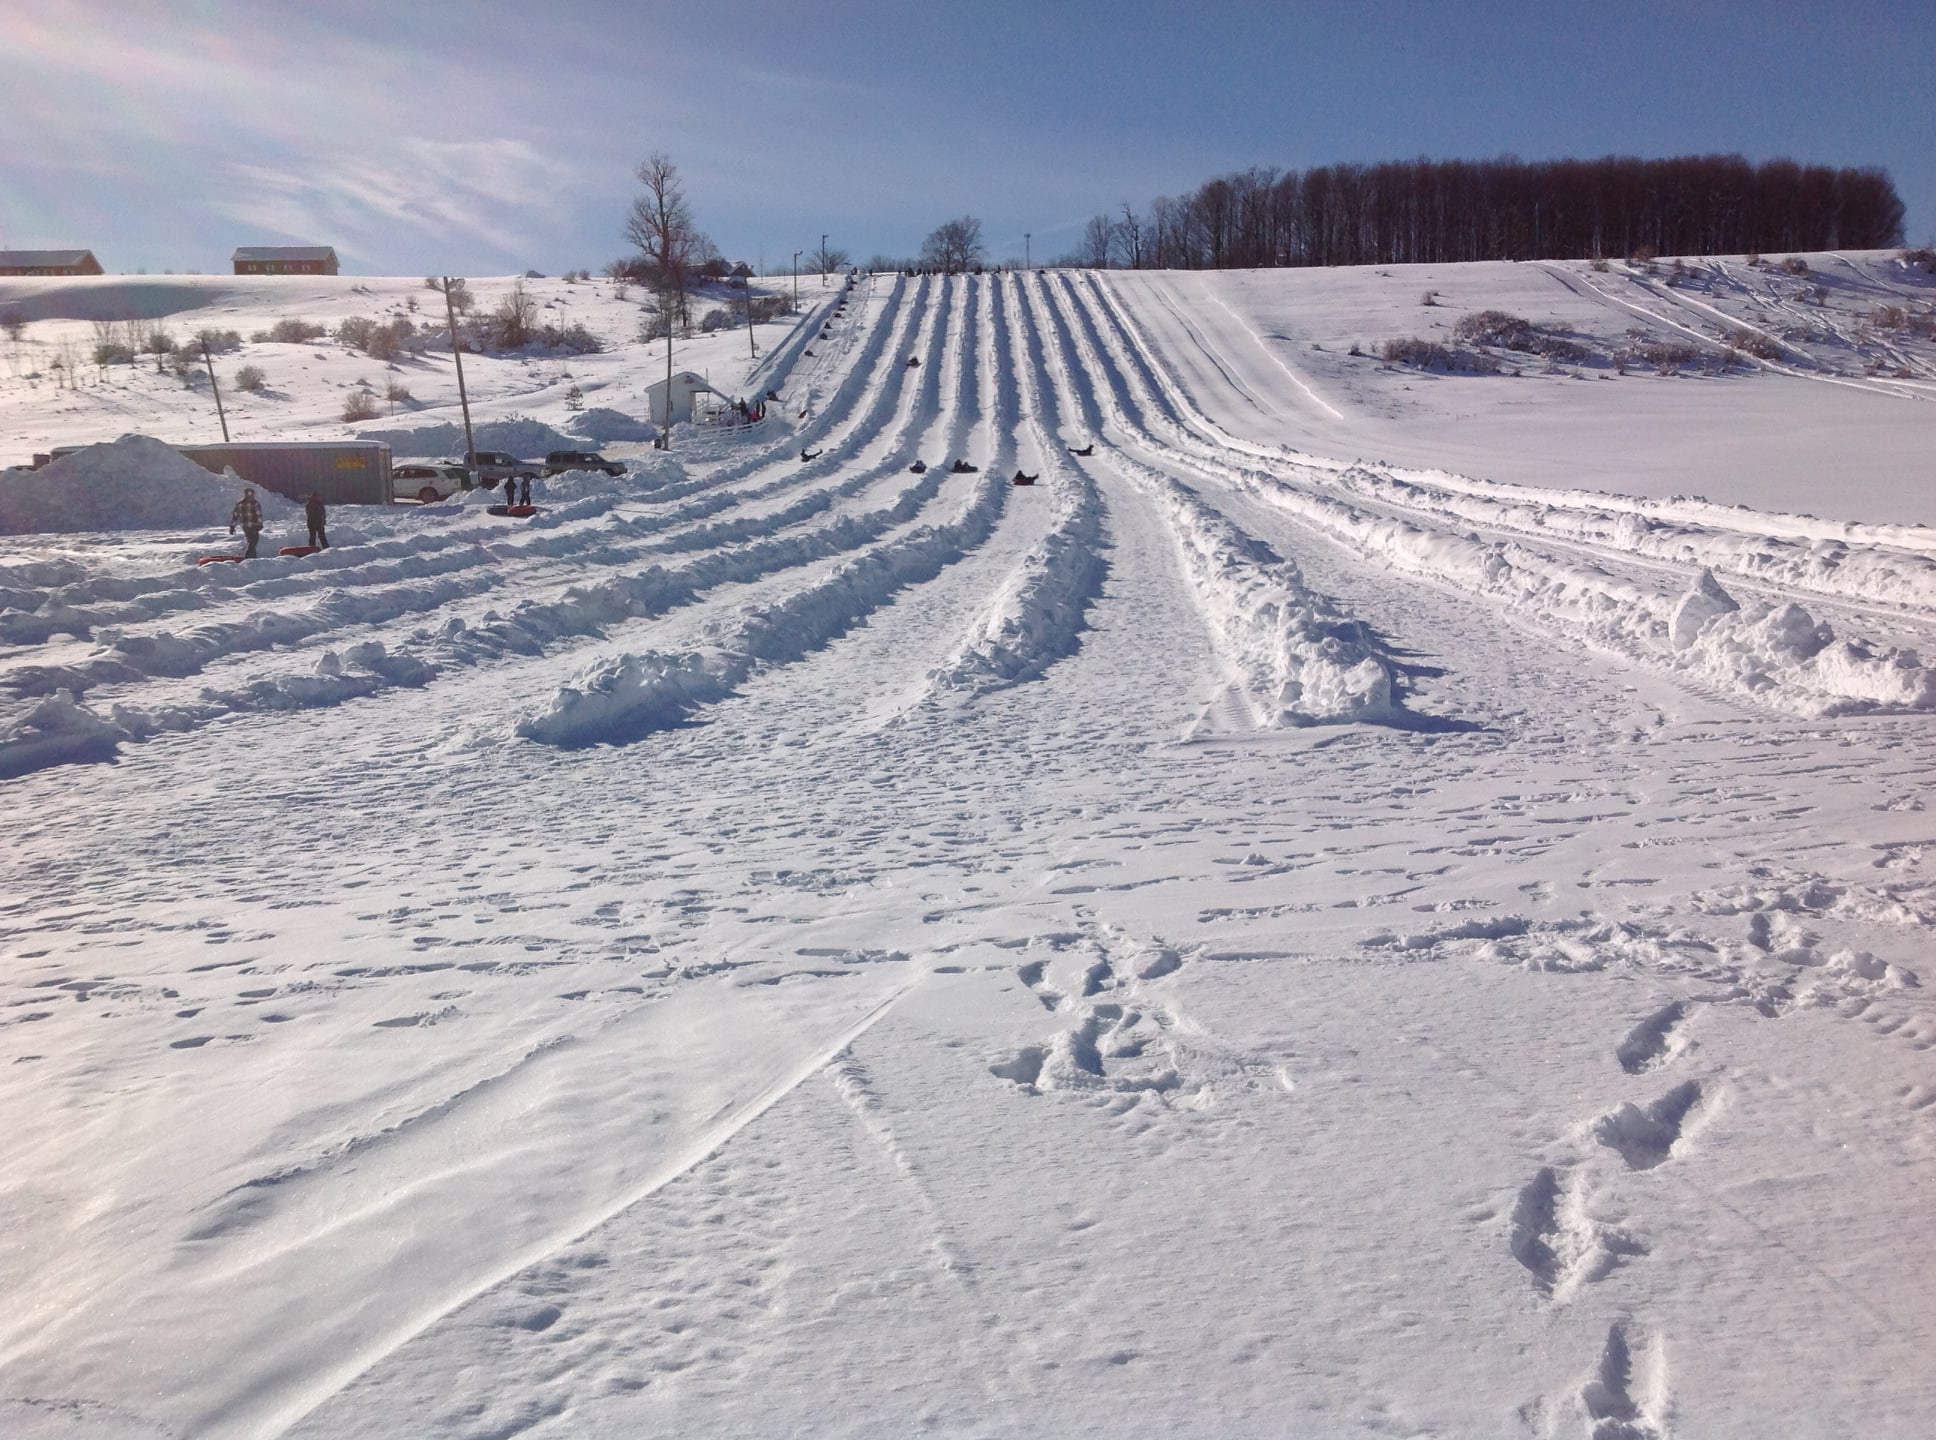 The Tubing Hill at Maple Ridge Center, Lowville NY